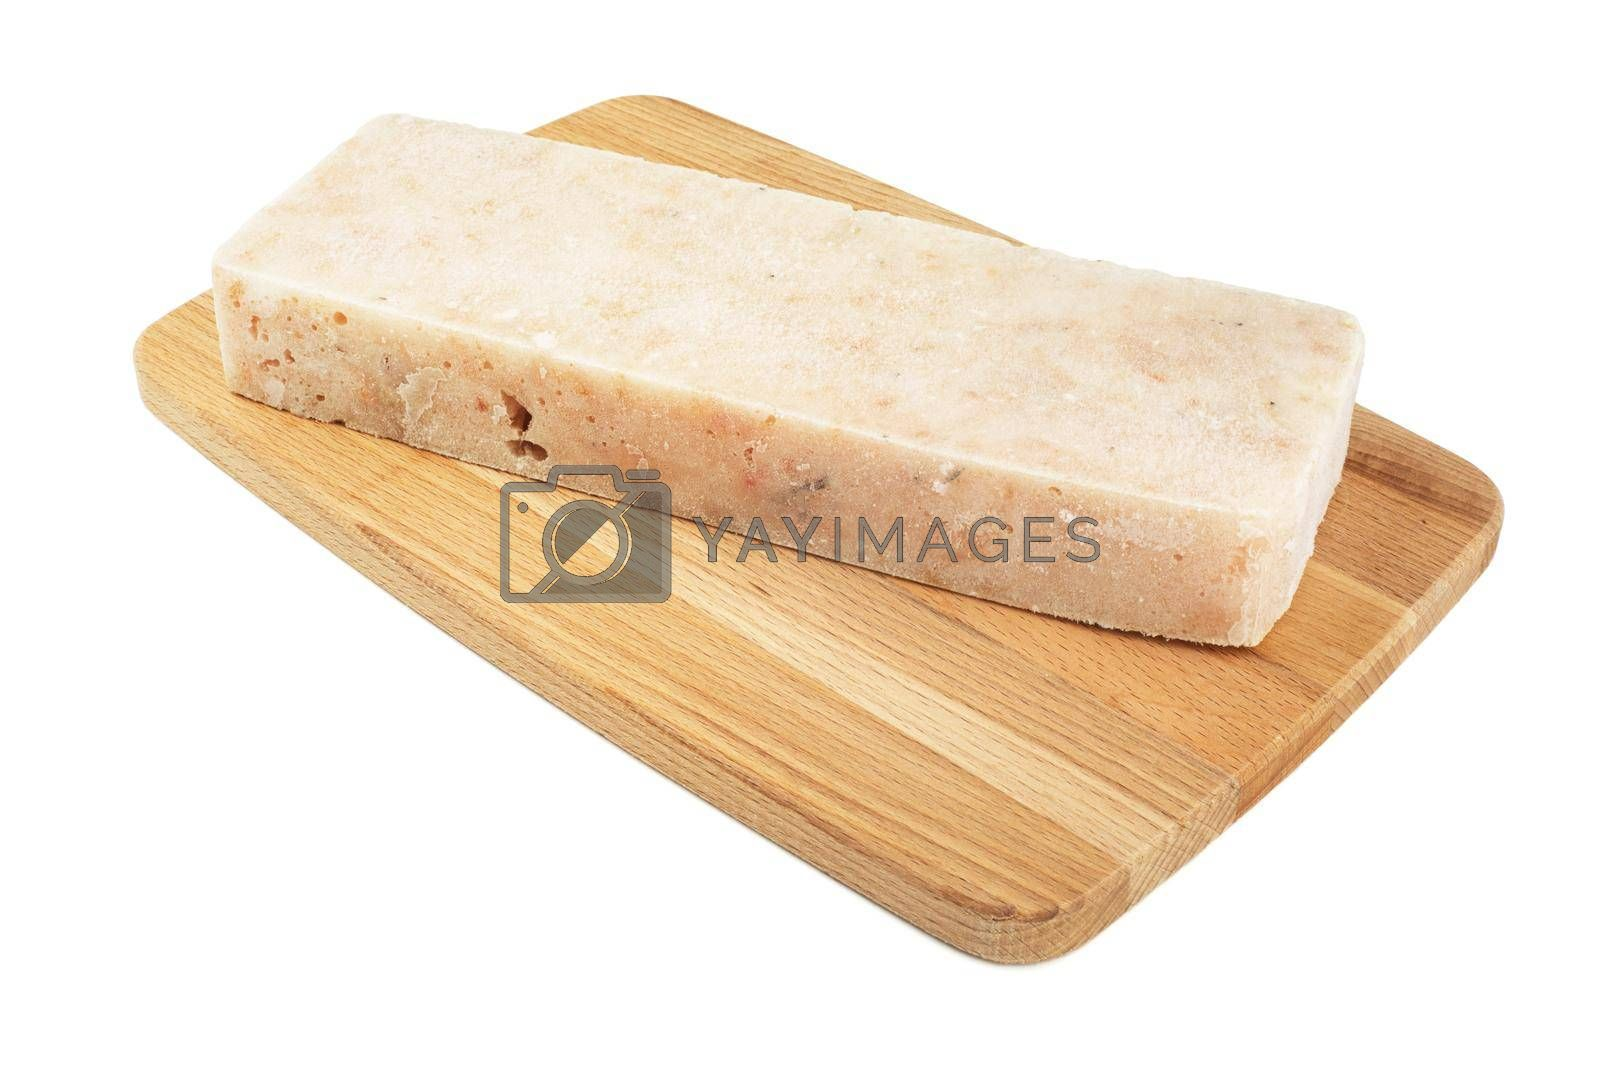 Frozen minced cod fish block on cutting board isolated on white background, semifinished prepack